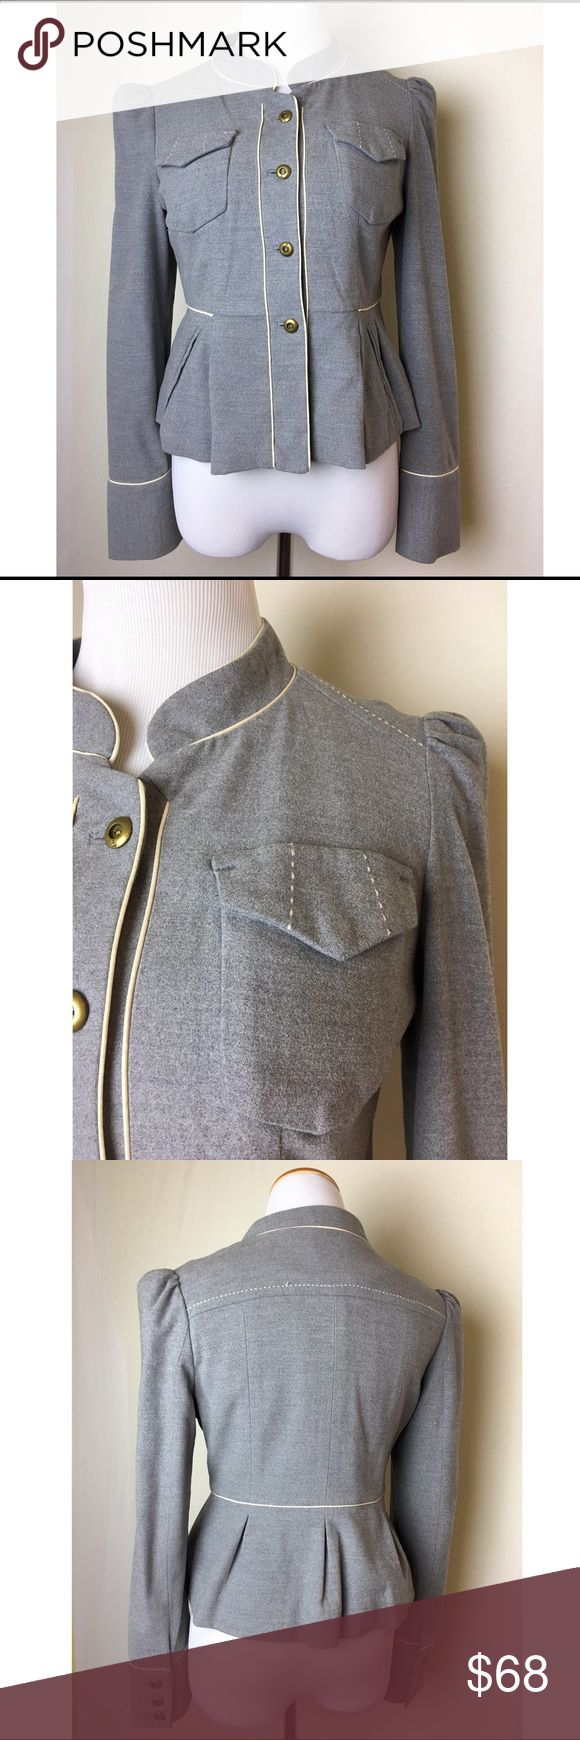 Beautiful grey Taikonhu jacket Military style peplum jacket with white piping and stitching detail. Brass buttons at front and sleeves. Mandarin collar. Fully lined. Excellent condition. Anthropologie Jackets & Coats